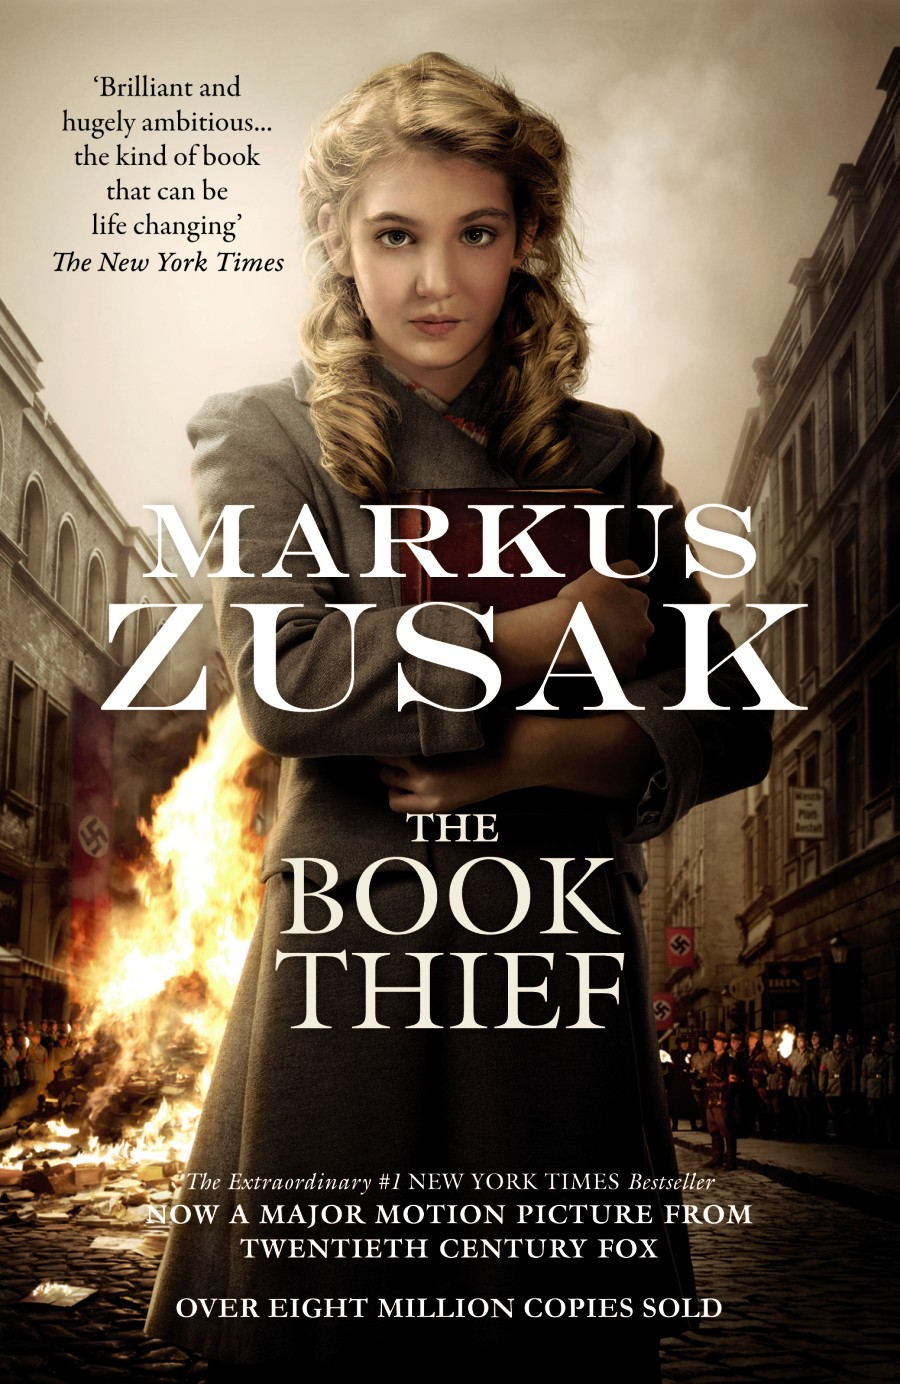 the book thief pan macmillan the book thief image